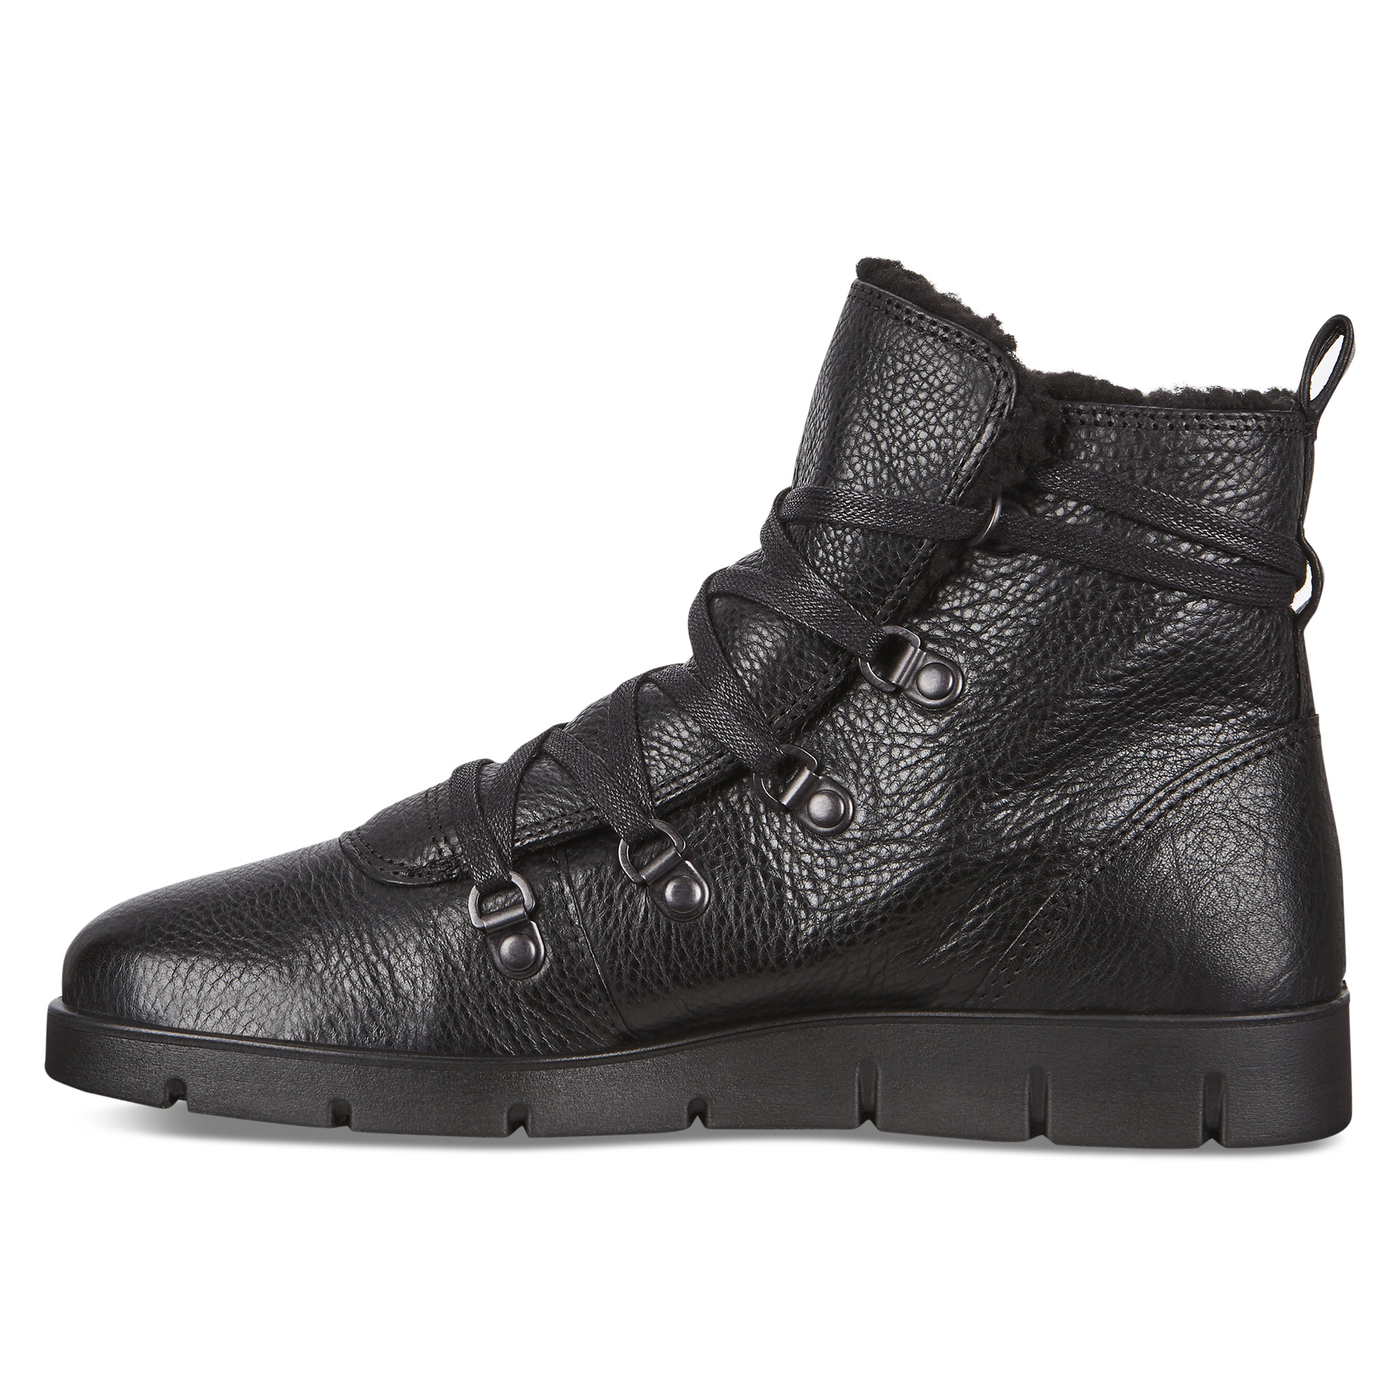 ECCO BELLA Warmlining Lace Up Boot